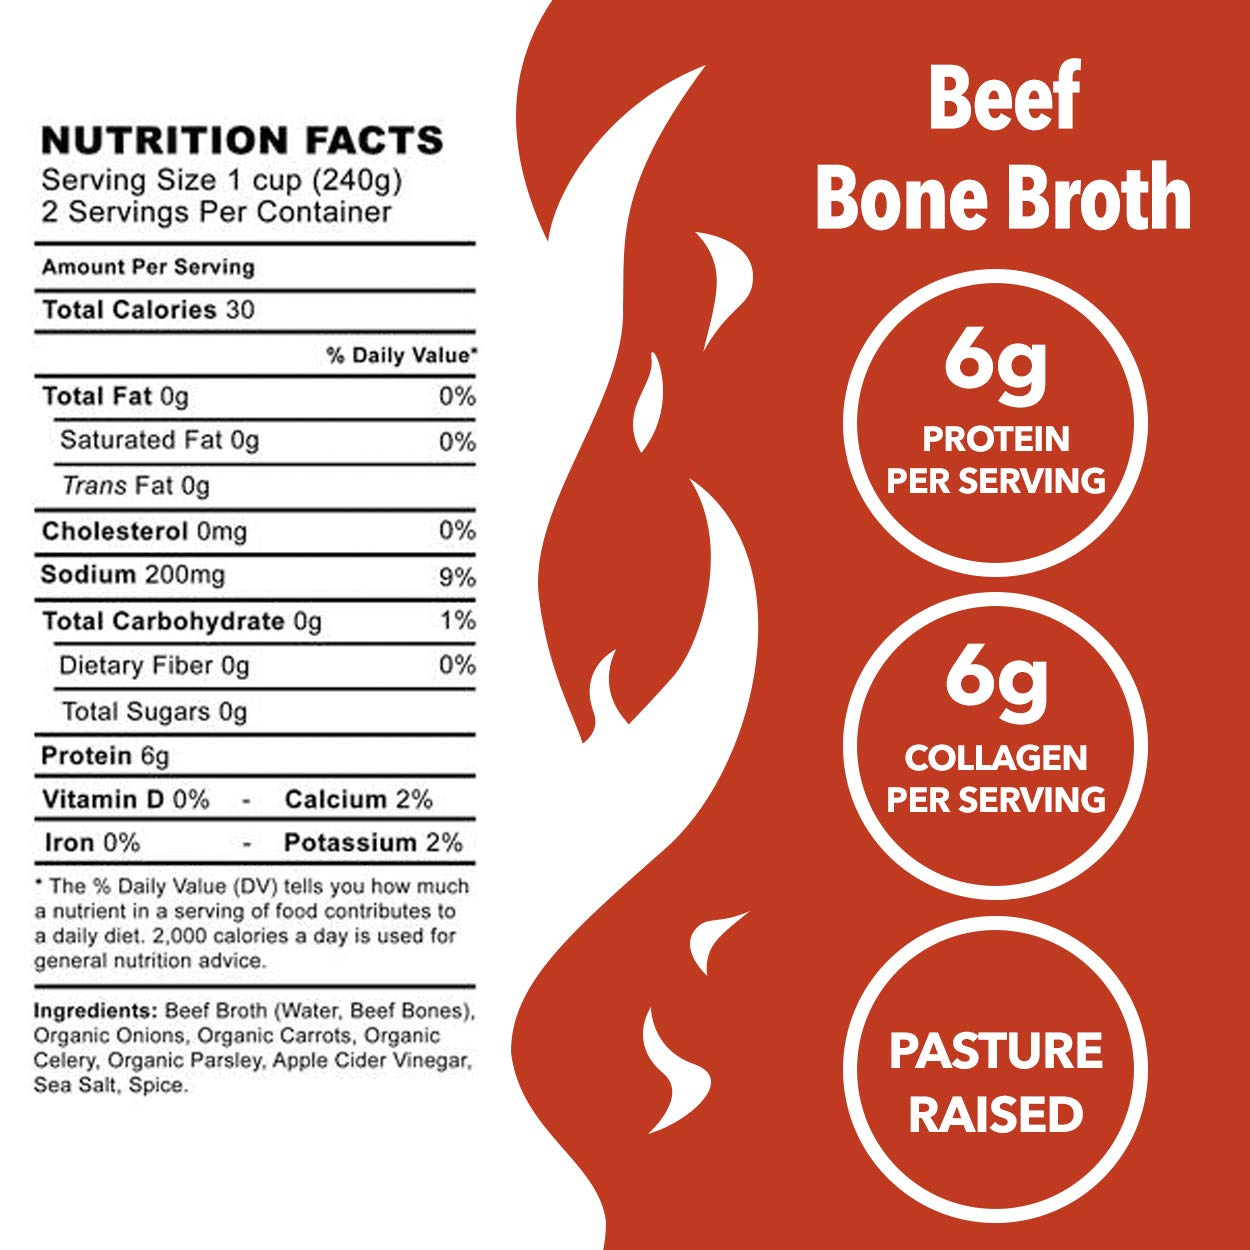 Amazon.com : Beef Bone Broth Soup by Kettle and Fire, Pack of 2, Keto Diet, Paleo Friendly, Whole 30 Approved, Gluten Free, with Collagen, 6g of protein, ...